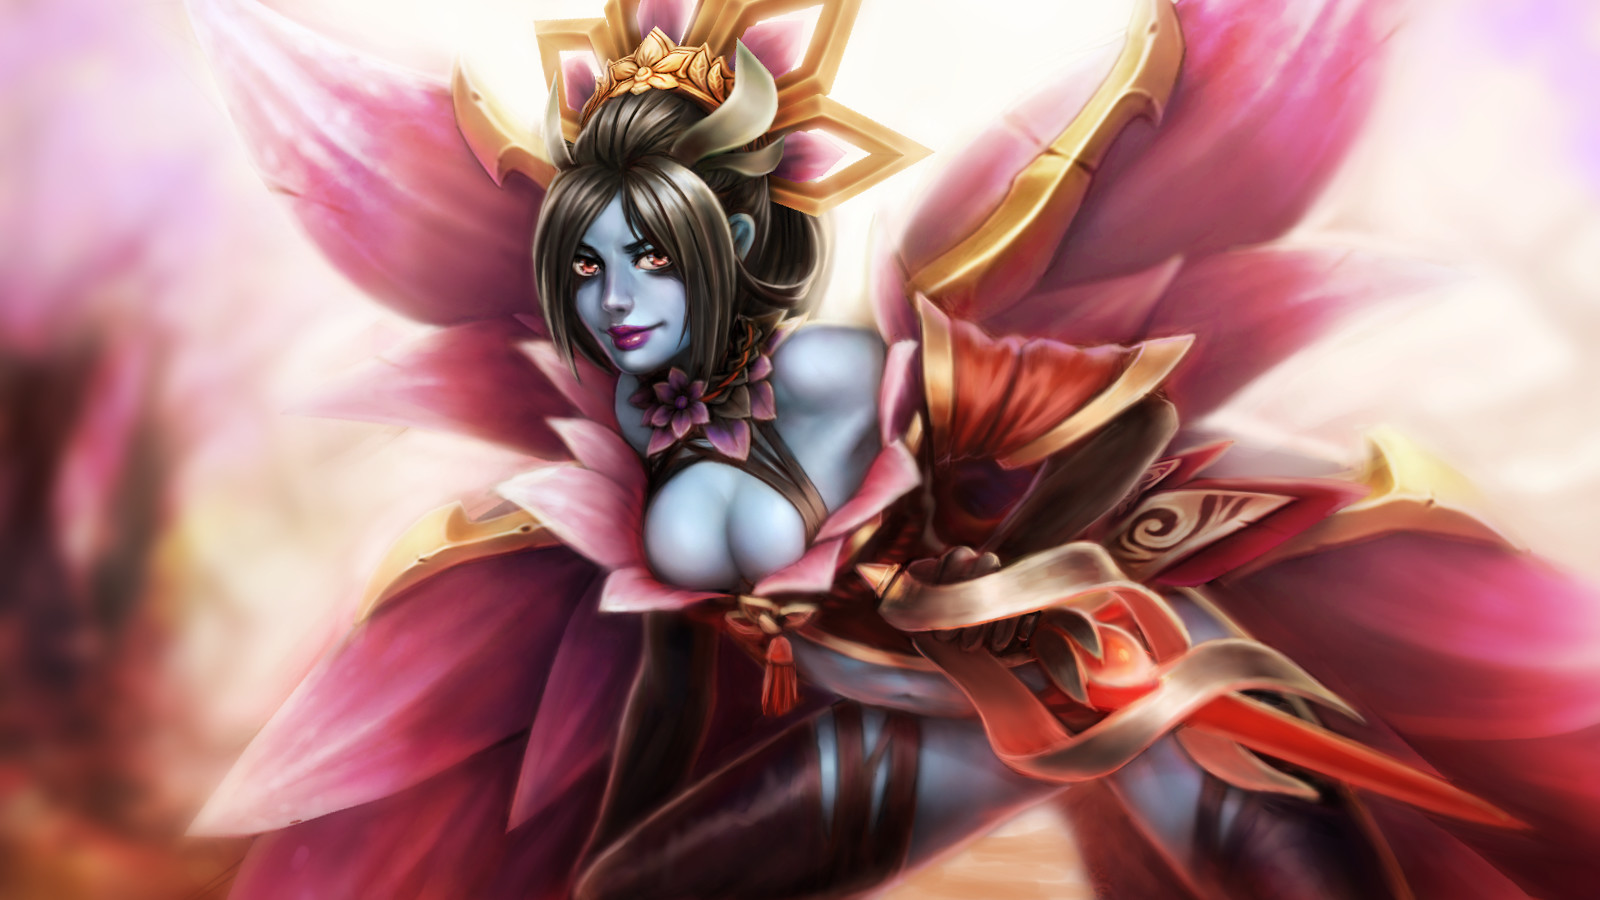 Artstation Dota 2 Queen Of Pain Flower Queen Narongdej Teo